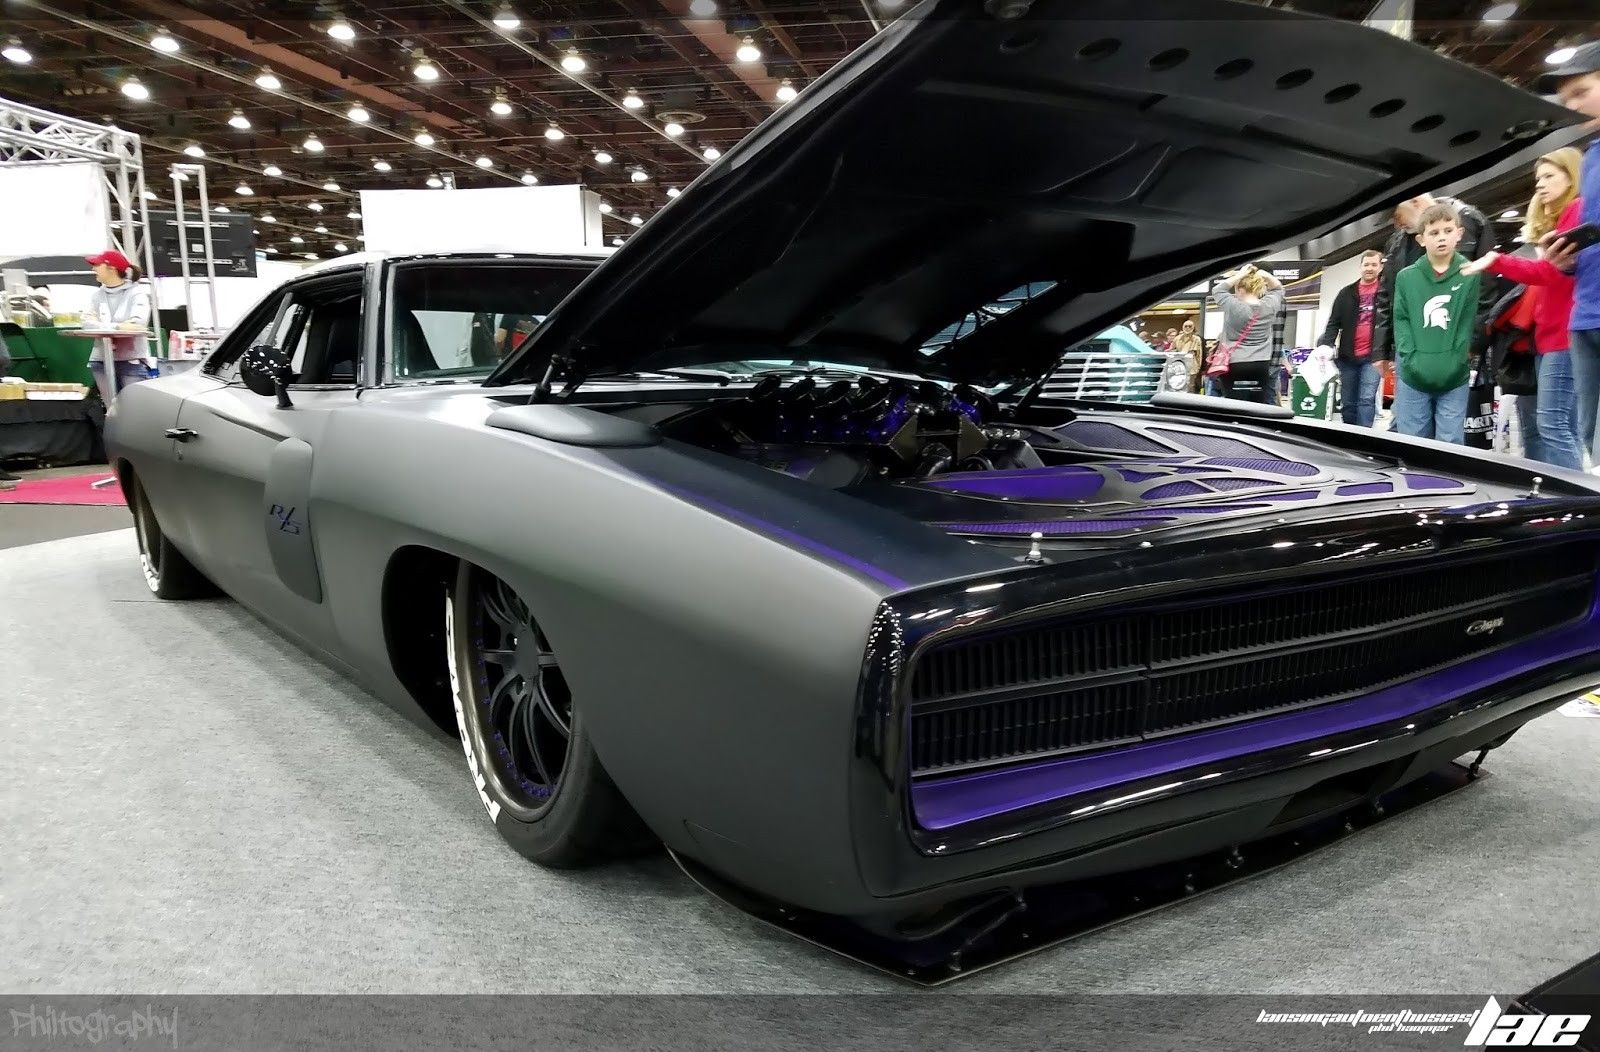 Dodge Charger Custom Attending Dodge Charger Custom Can Be A Disaster If You Forget These 2 In 2021 Dodge Charger Dodge Twin Turbo